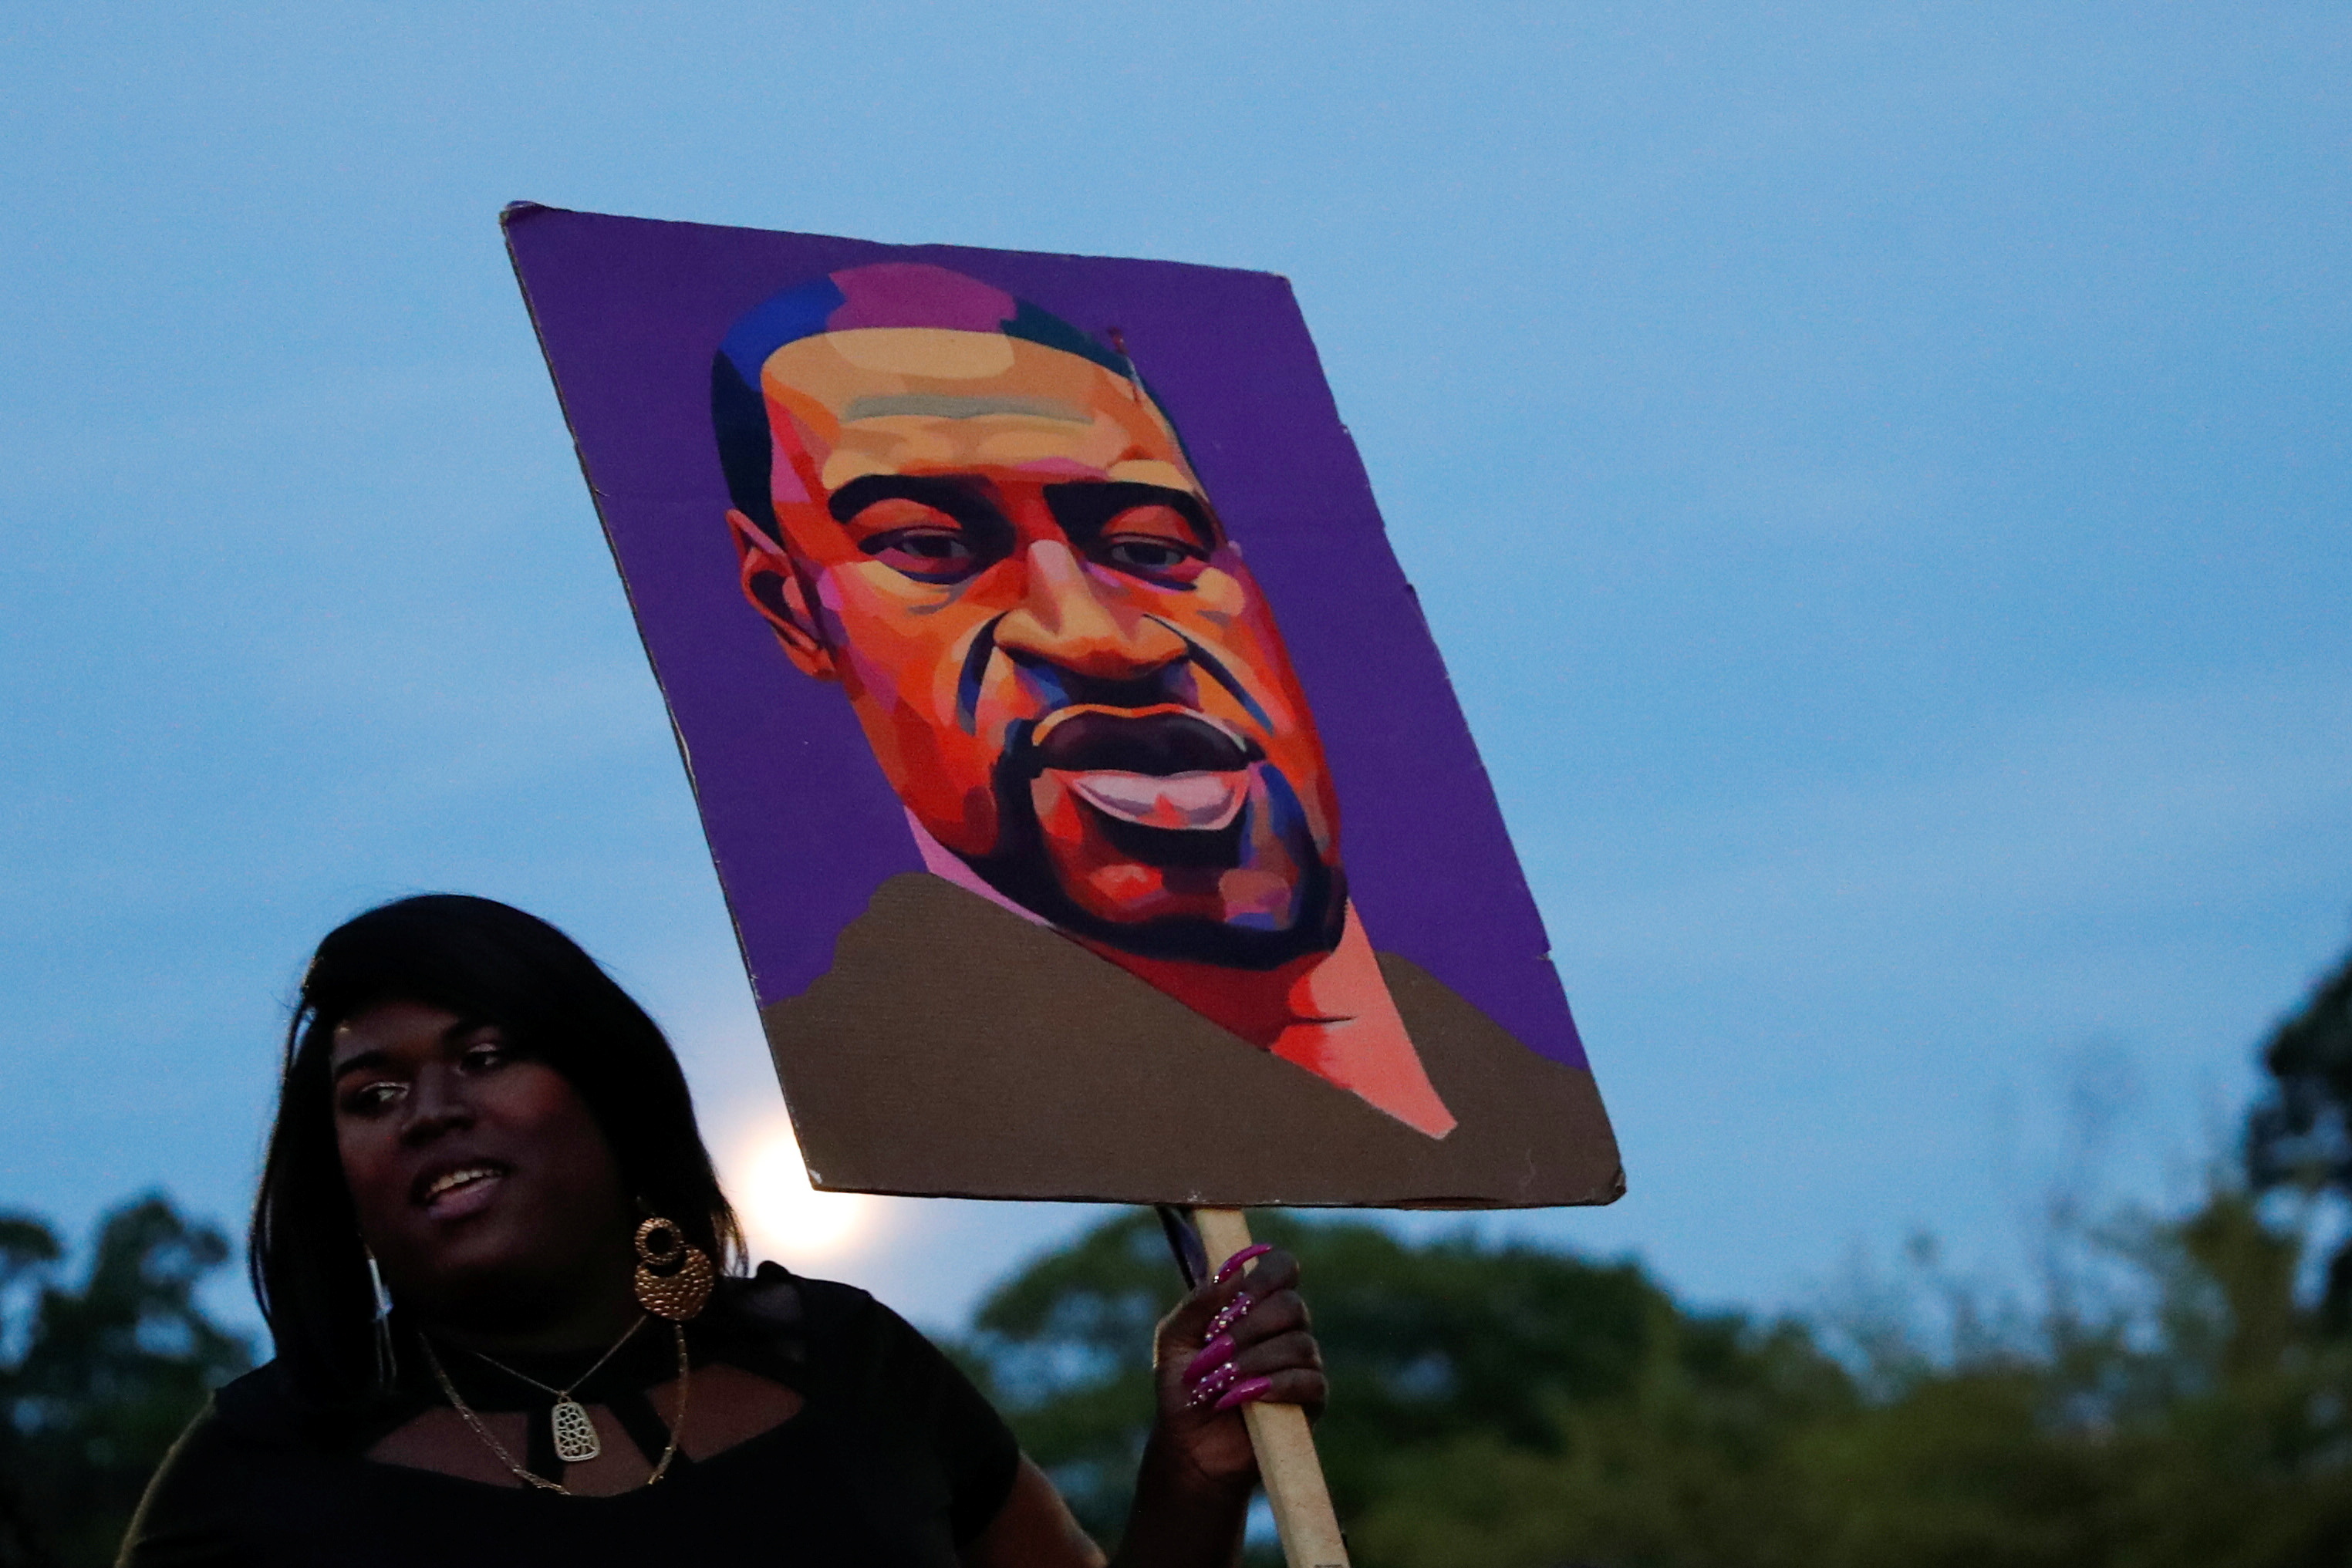 A woman holds a placard depicting George Floyd during a demonstration on the first anniversary of his death, in Brooklyn, New York City, New York, U.S., May 25, 2021. REUTERS/Shannon Stapleton